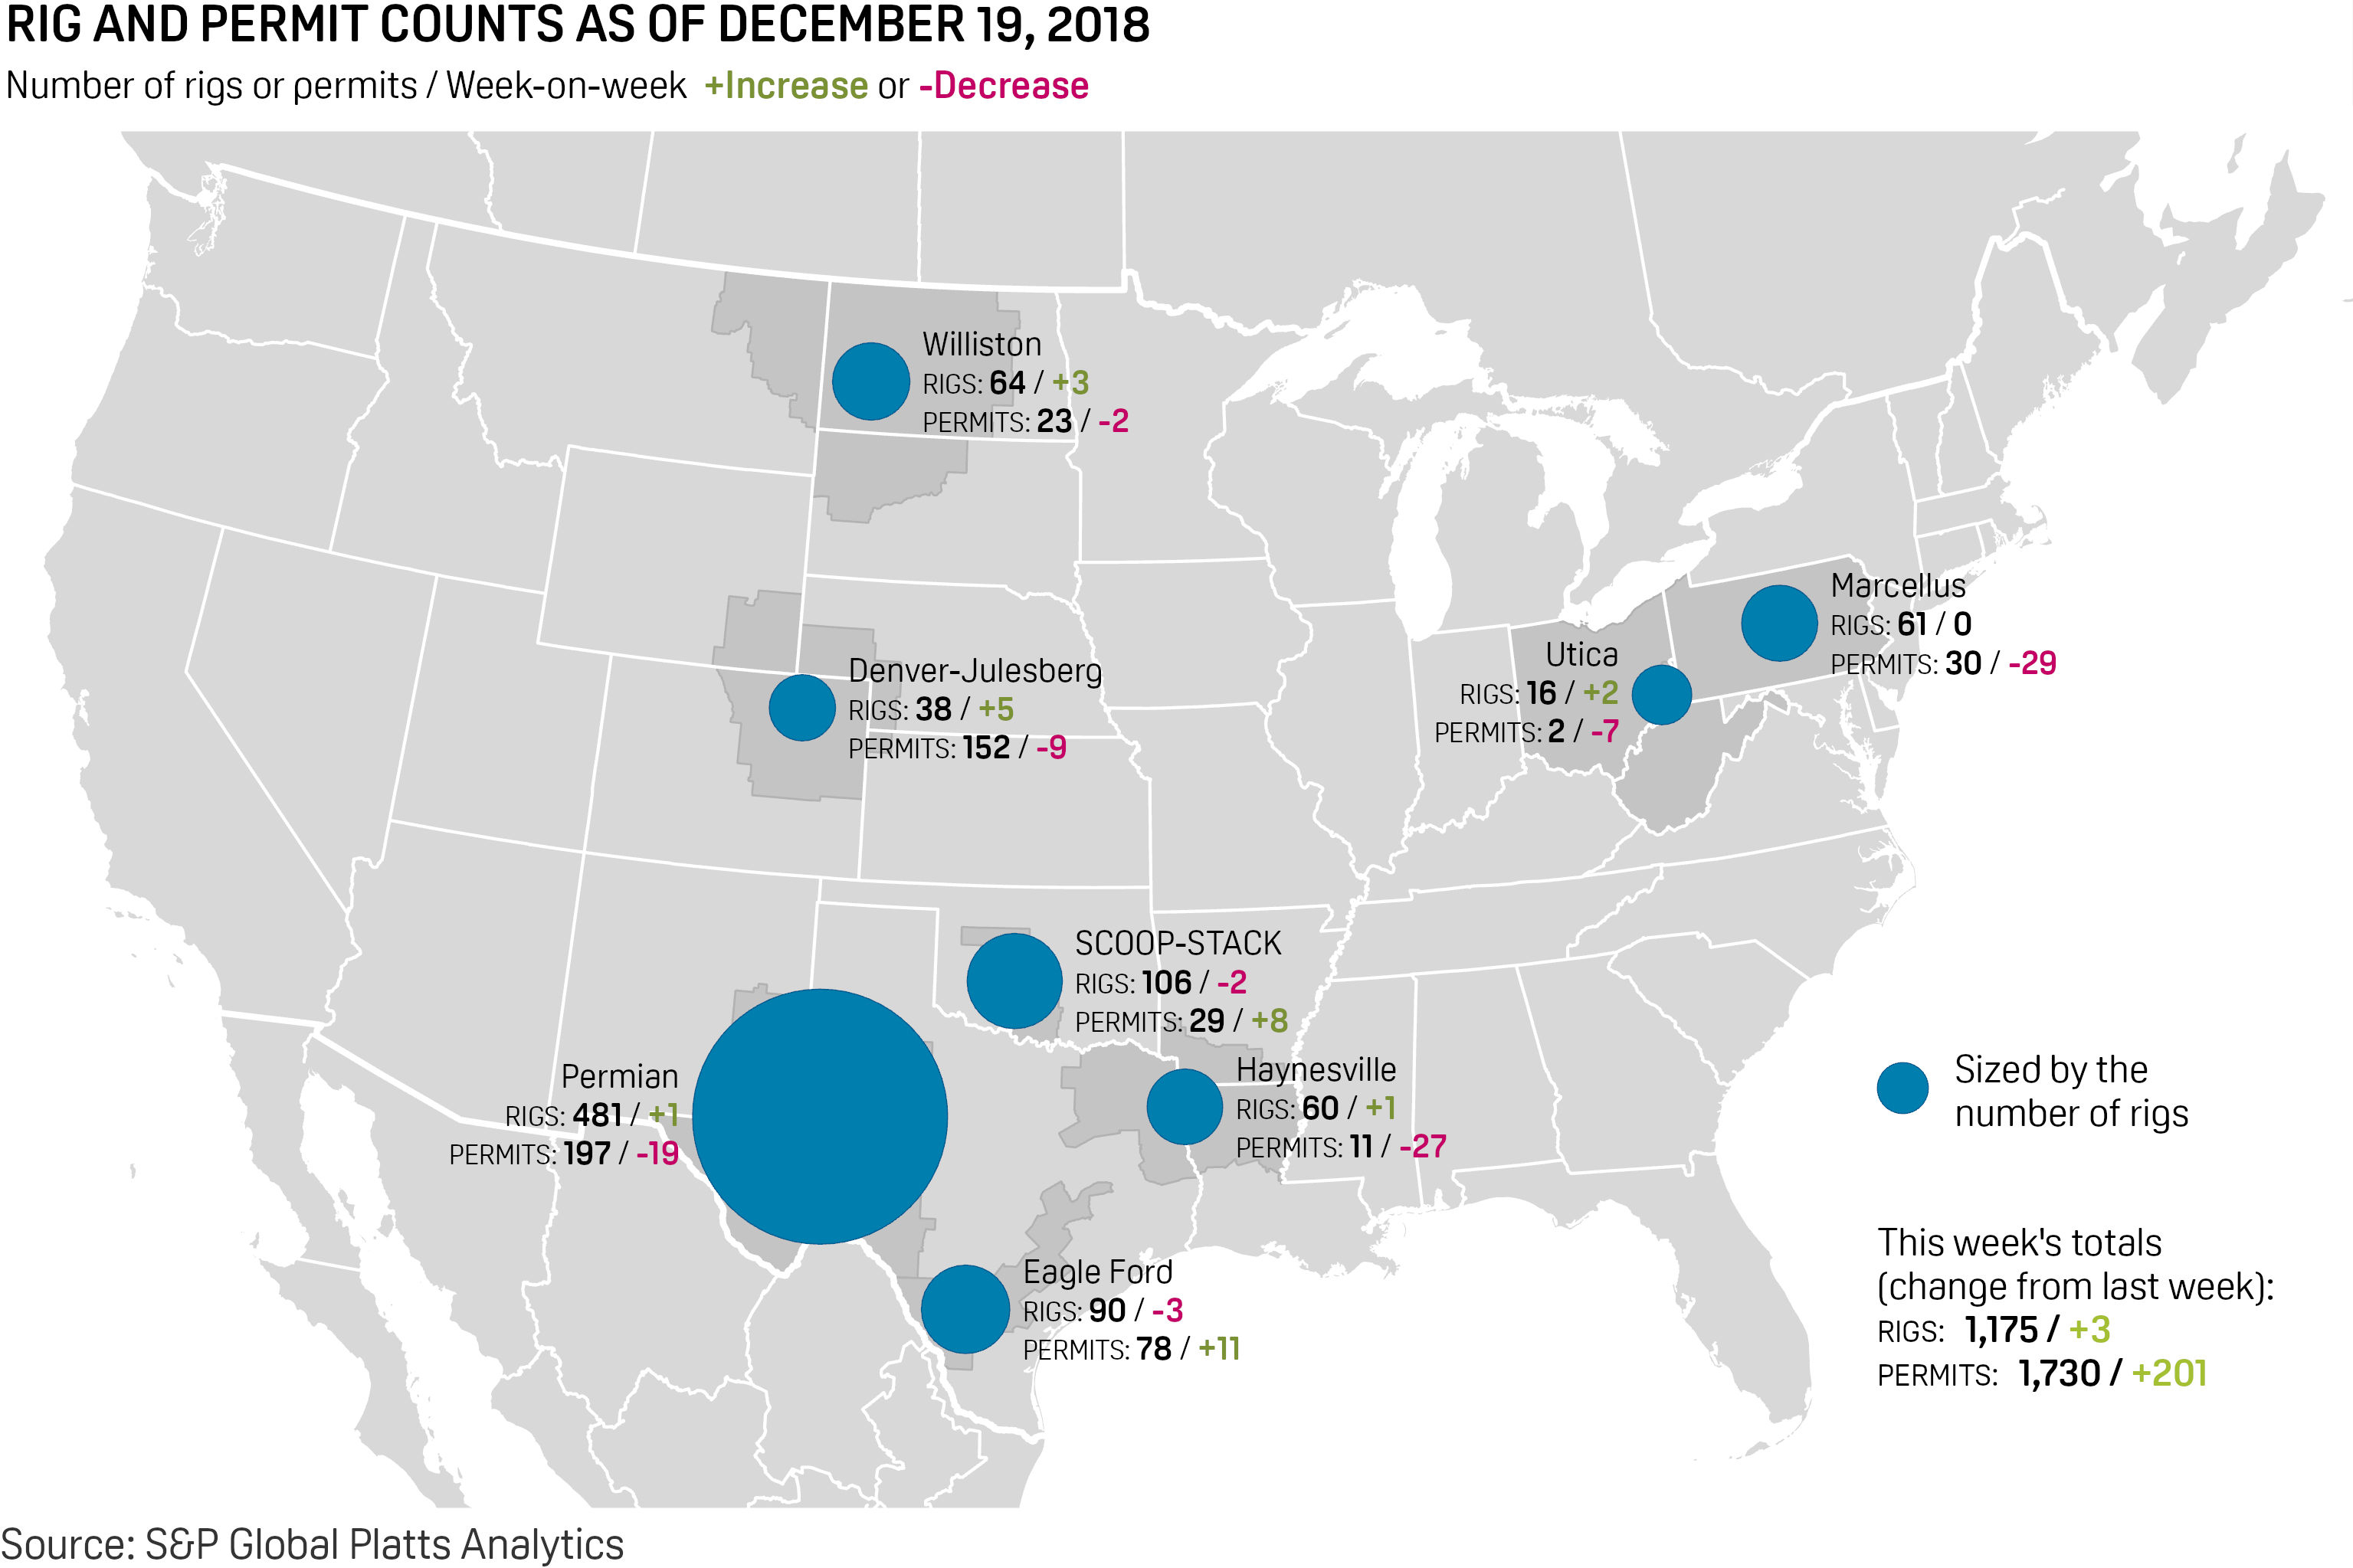 Us Rig Count Rebounds After Three-Week Decline, Up Three To 1,175 - Texas Rig Count Map